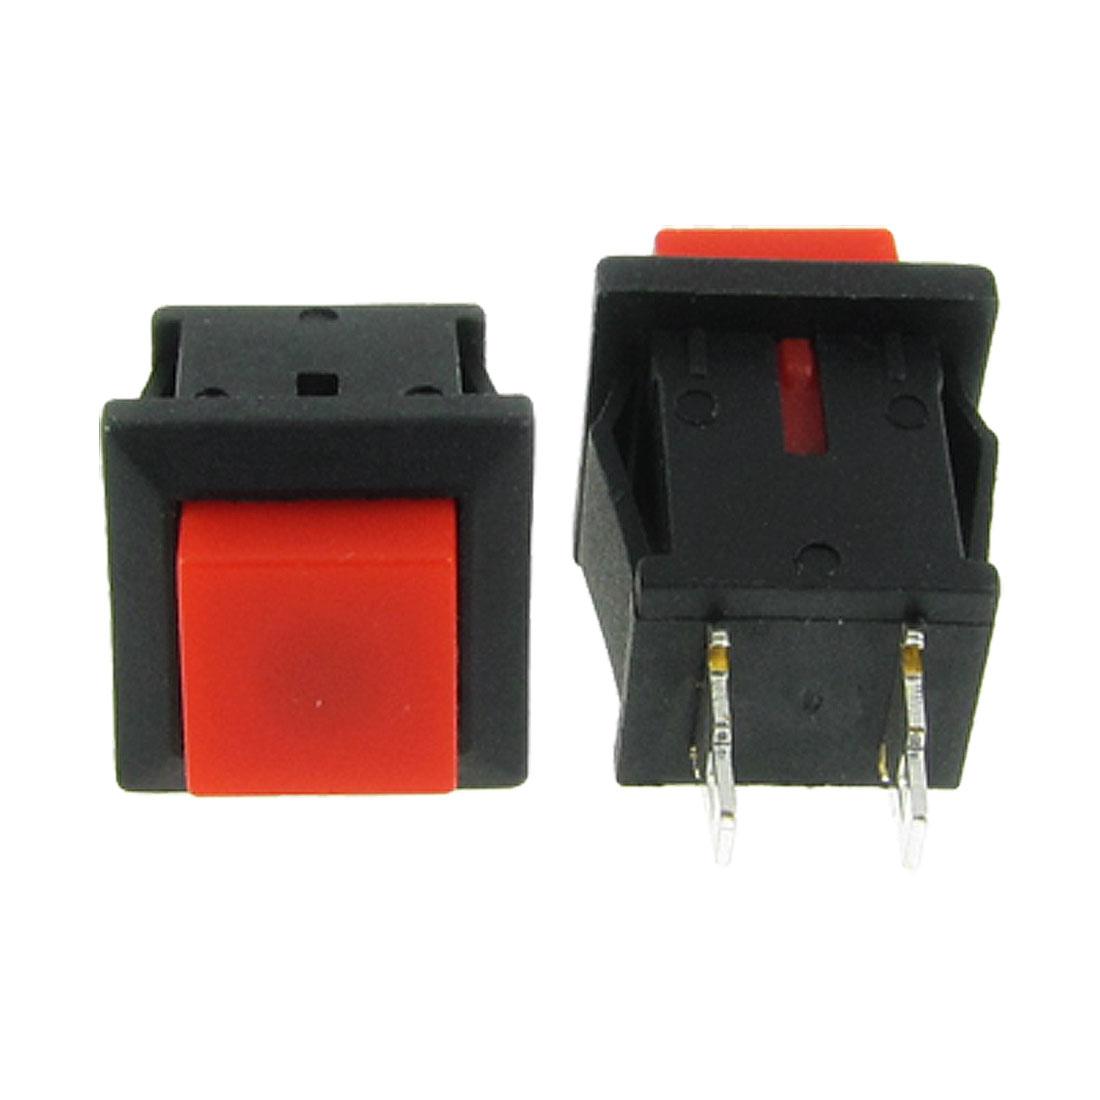 20 Pcs Red Momentary Square Push Button Switch N/O SPST AC 125V/1A